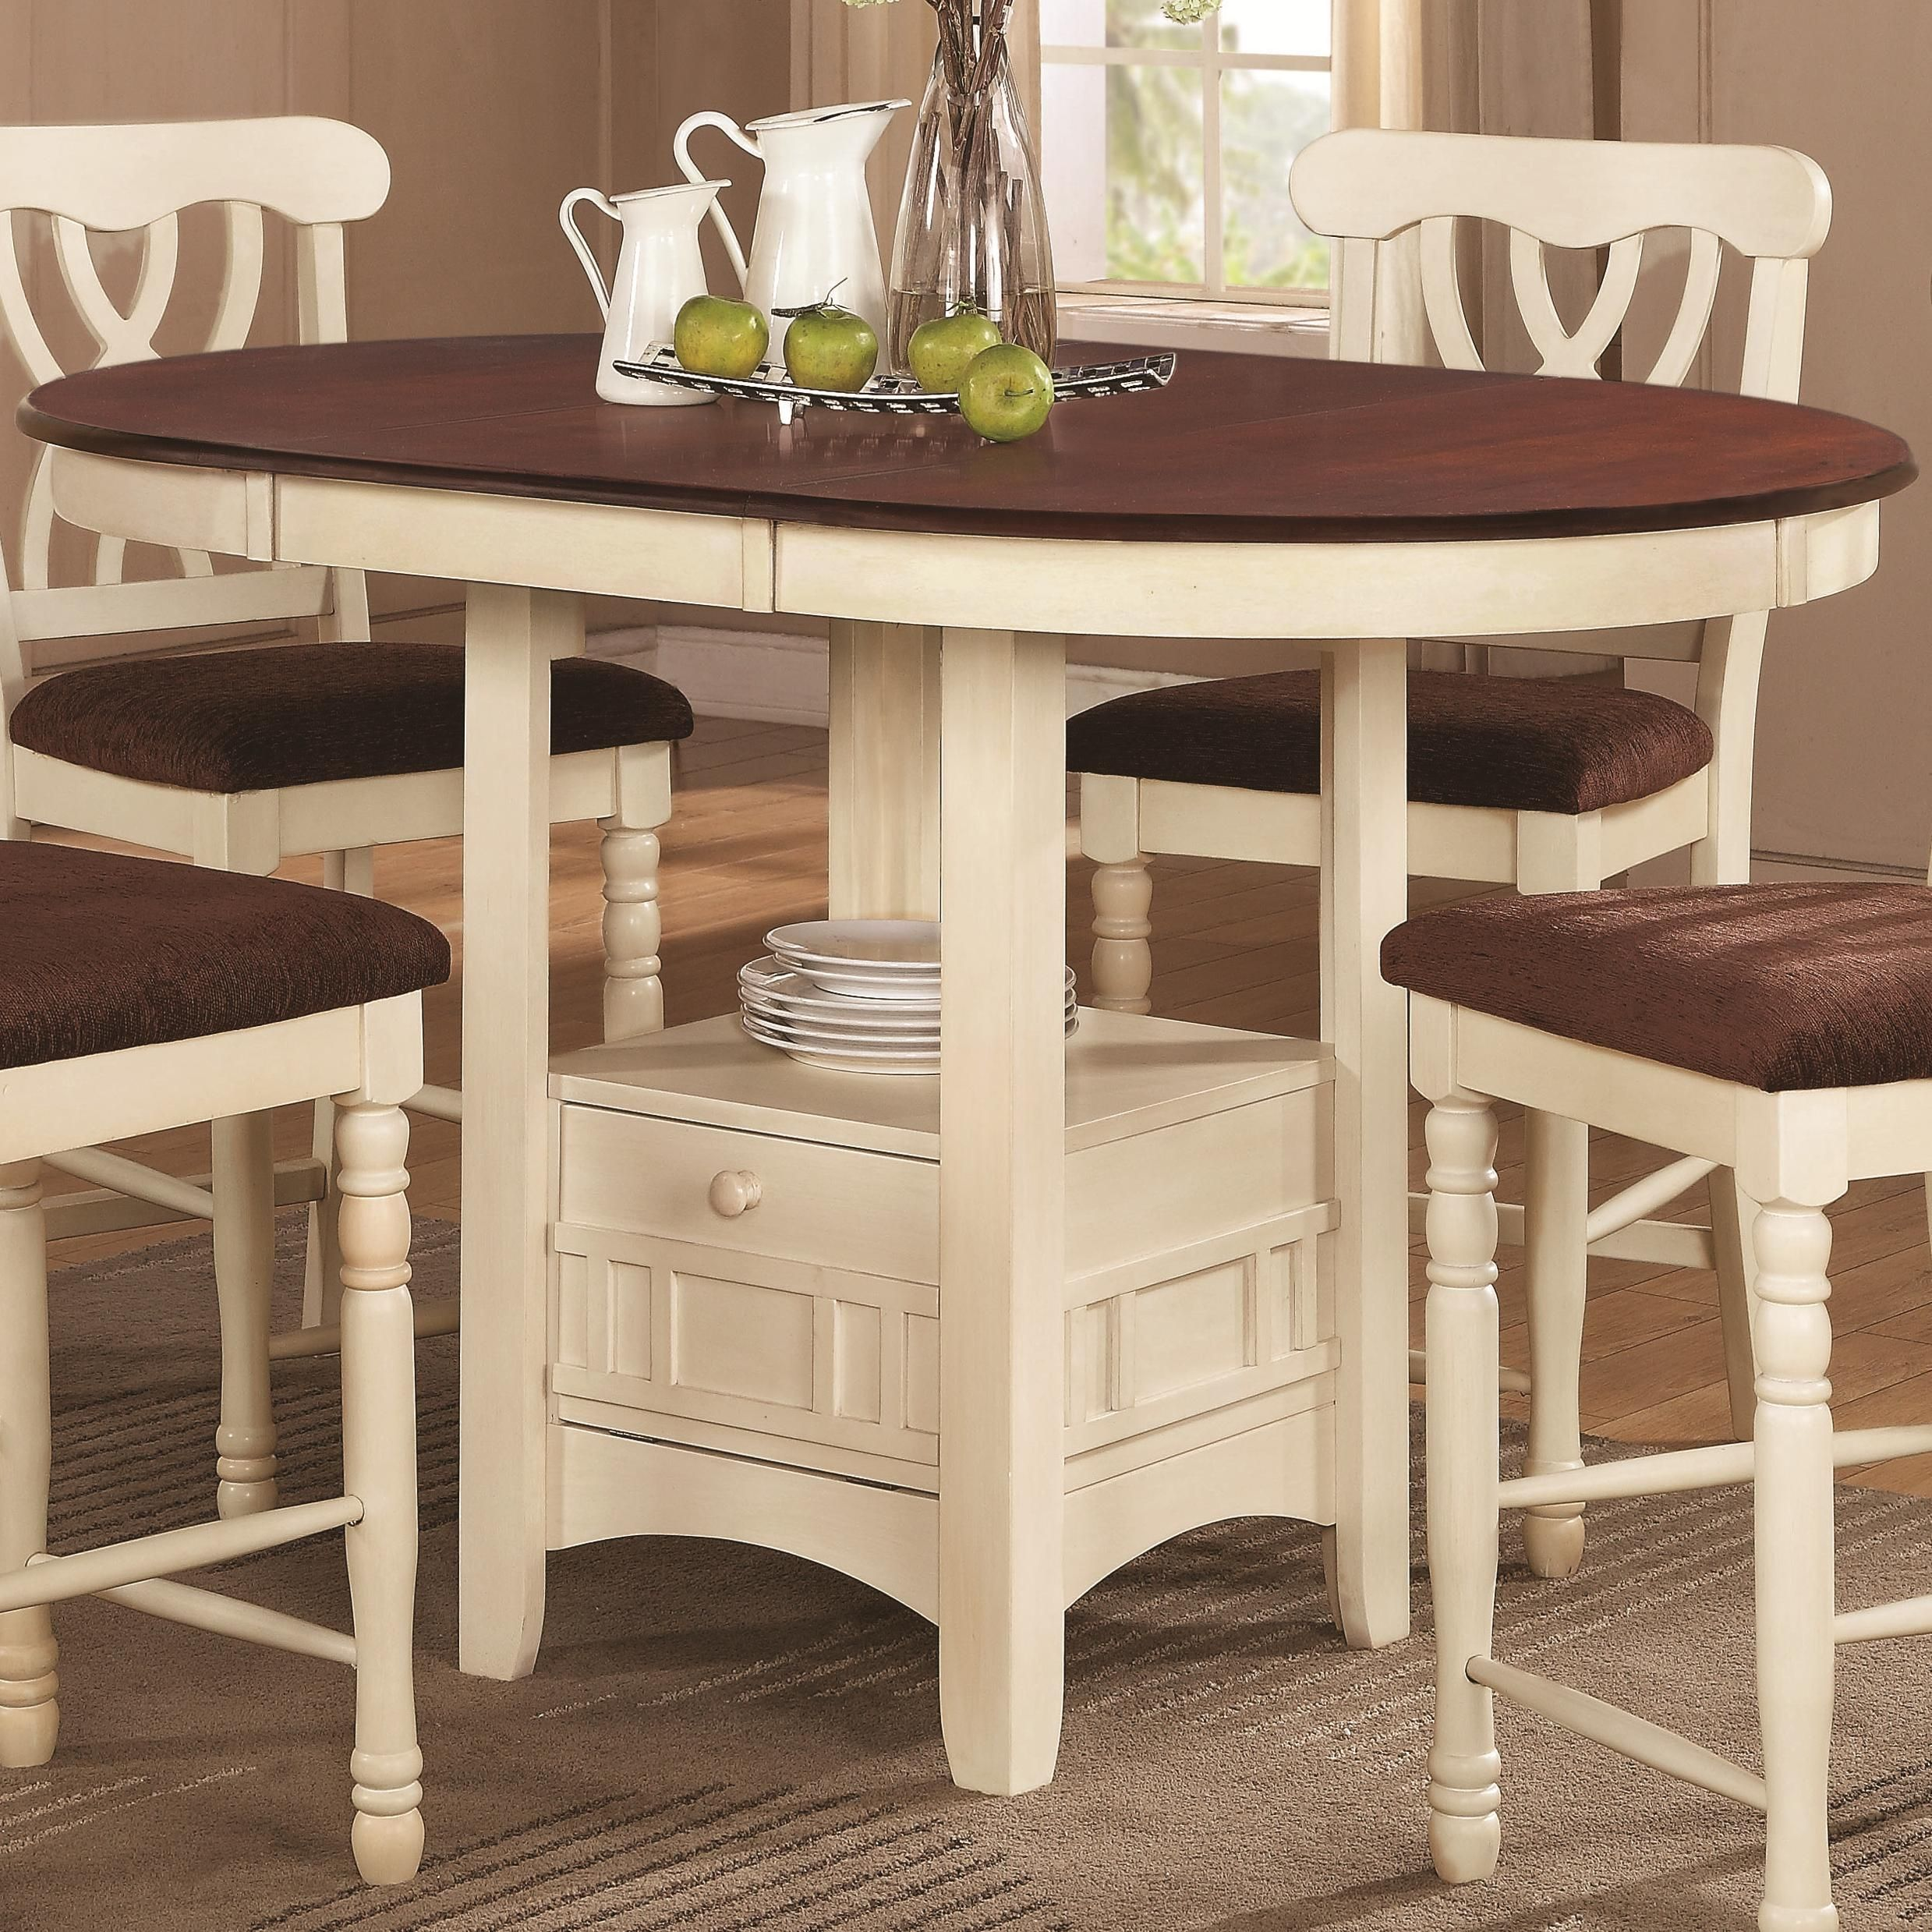 1000 Ideas About Counter Height Chairs On Pinterest: Addison Counter Height Table By Coaste(Rostock Furn